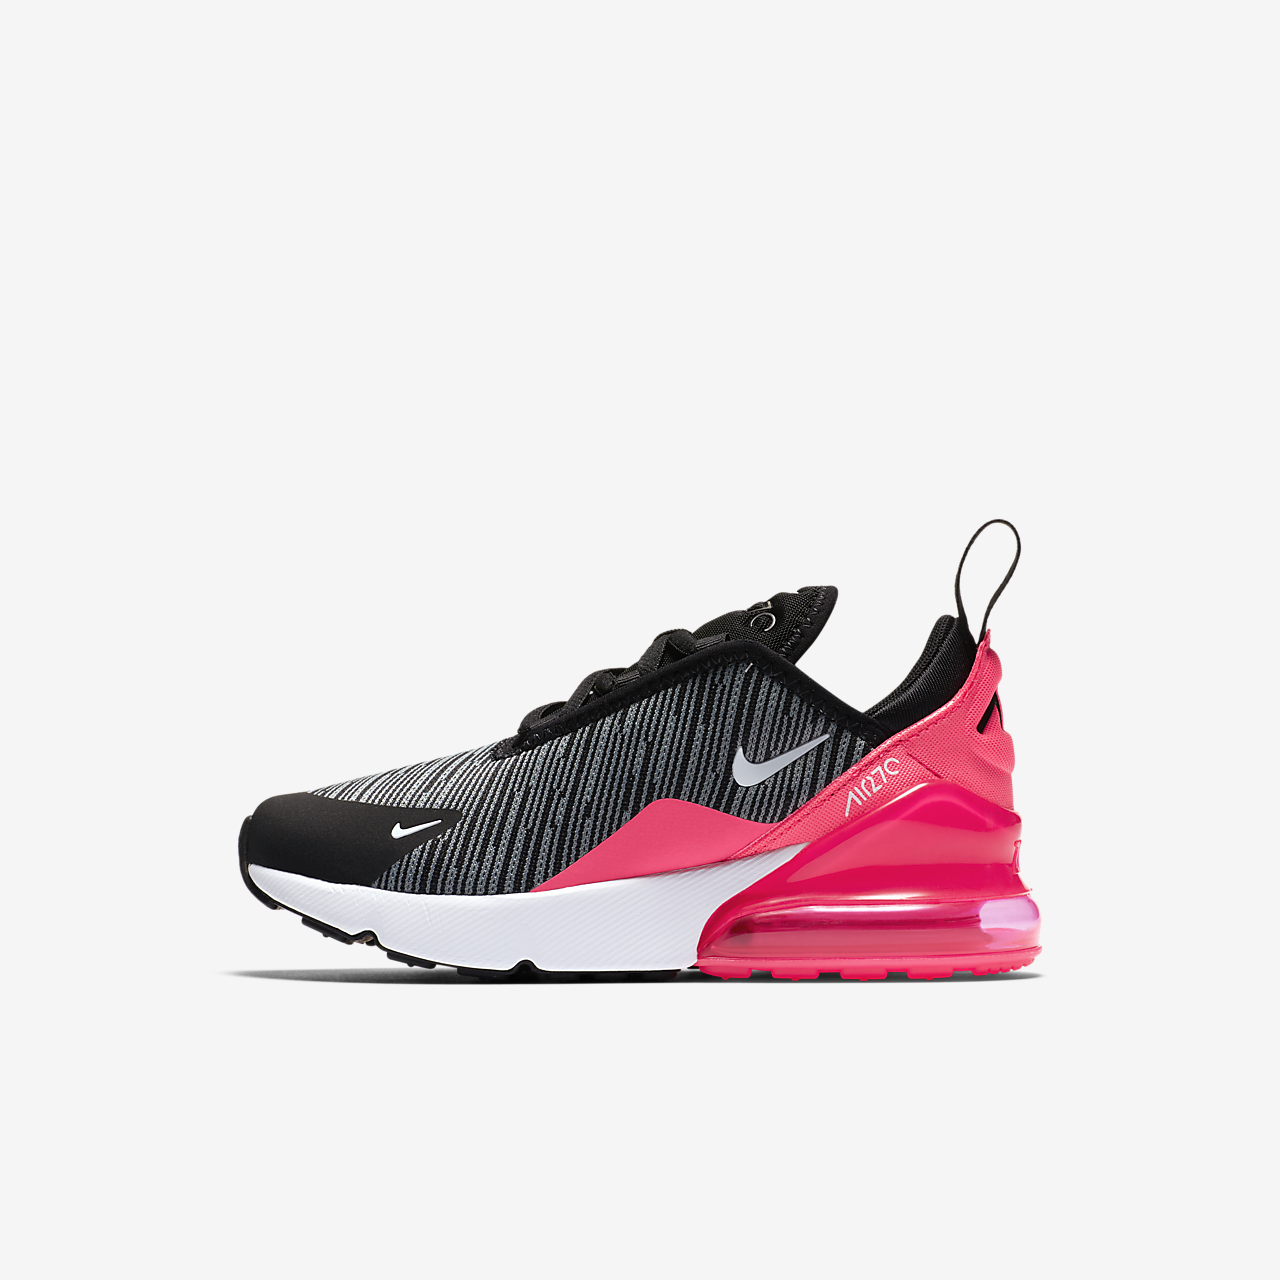 Kids' 270 Chaussures Air Nike Max Little ExOv47I